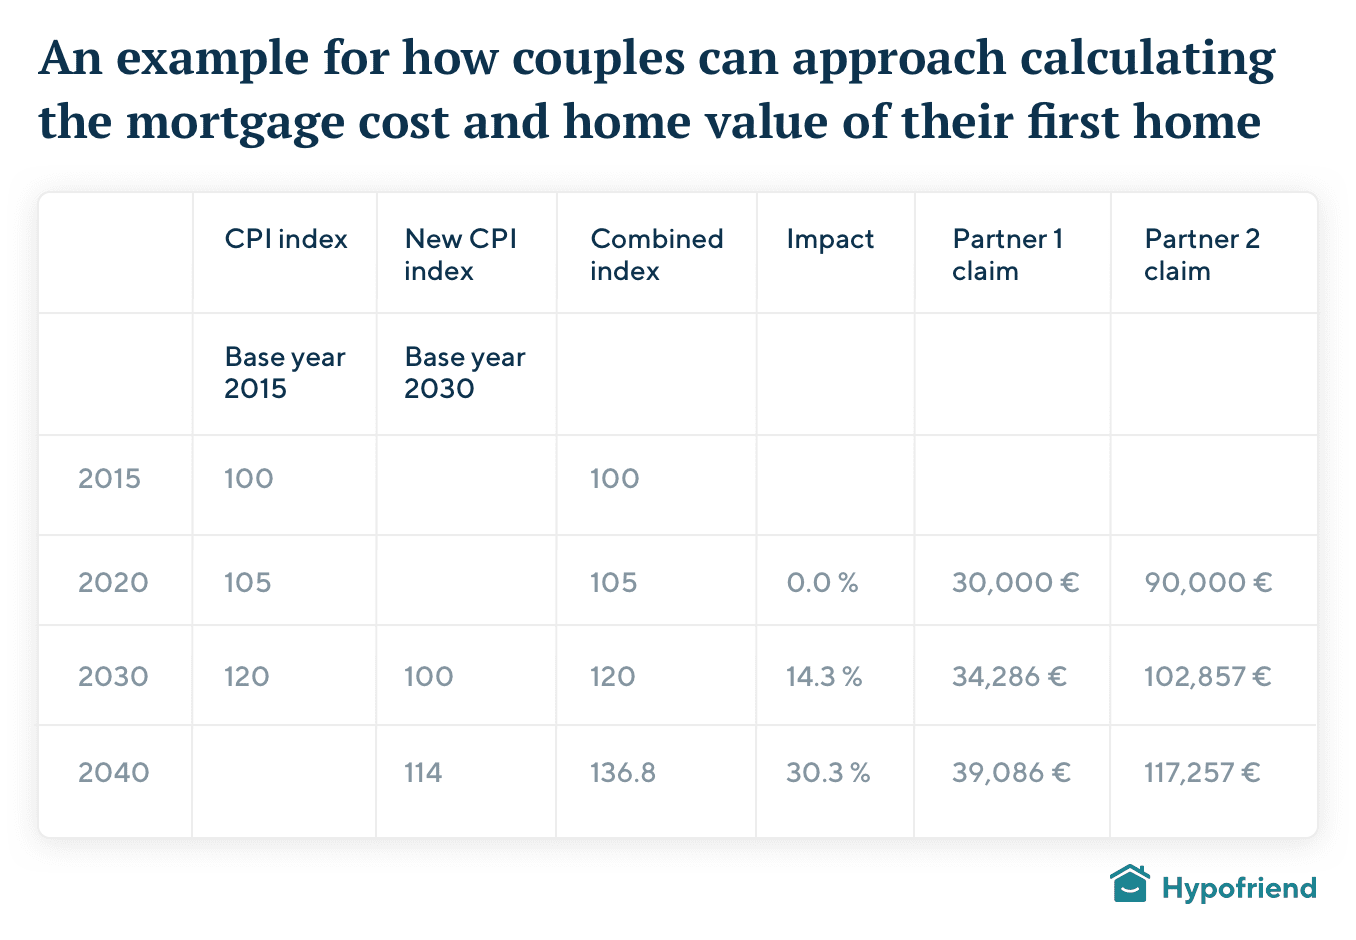 partner-mortgage-costs@2x